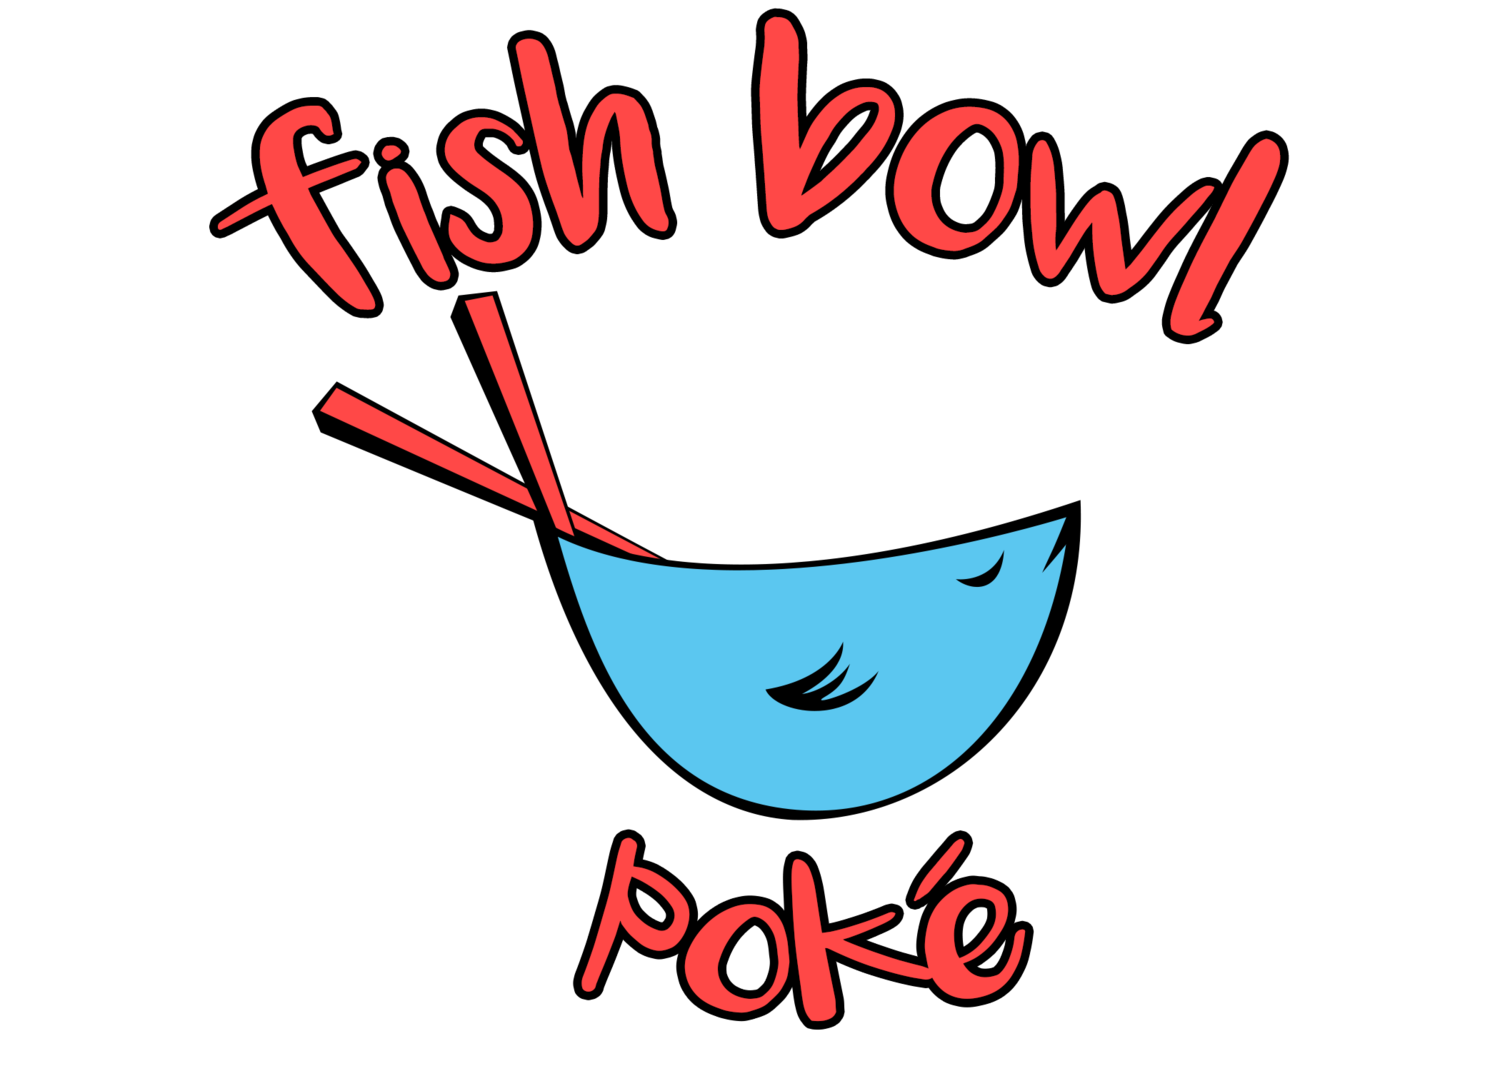 Fish bowl with water clipart royalty free library Fish Bowl Poké royalty free library